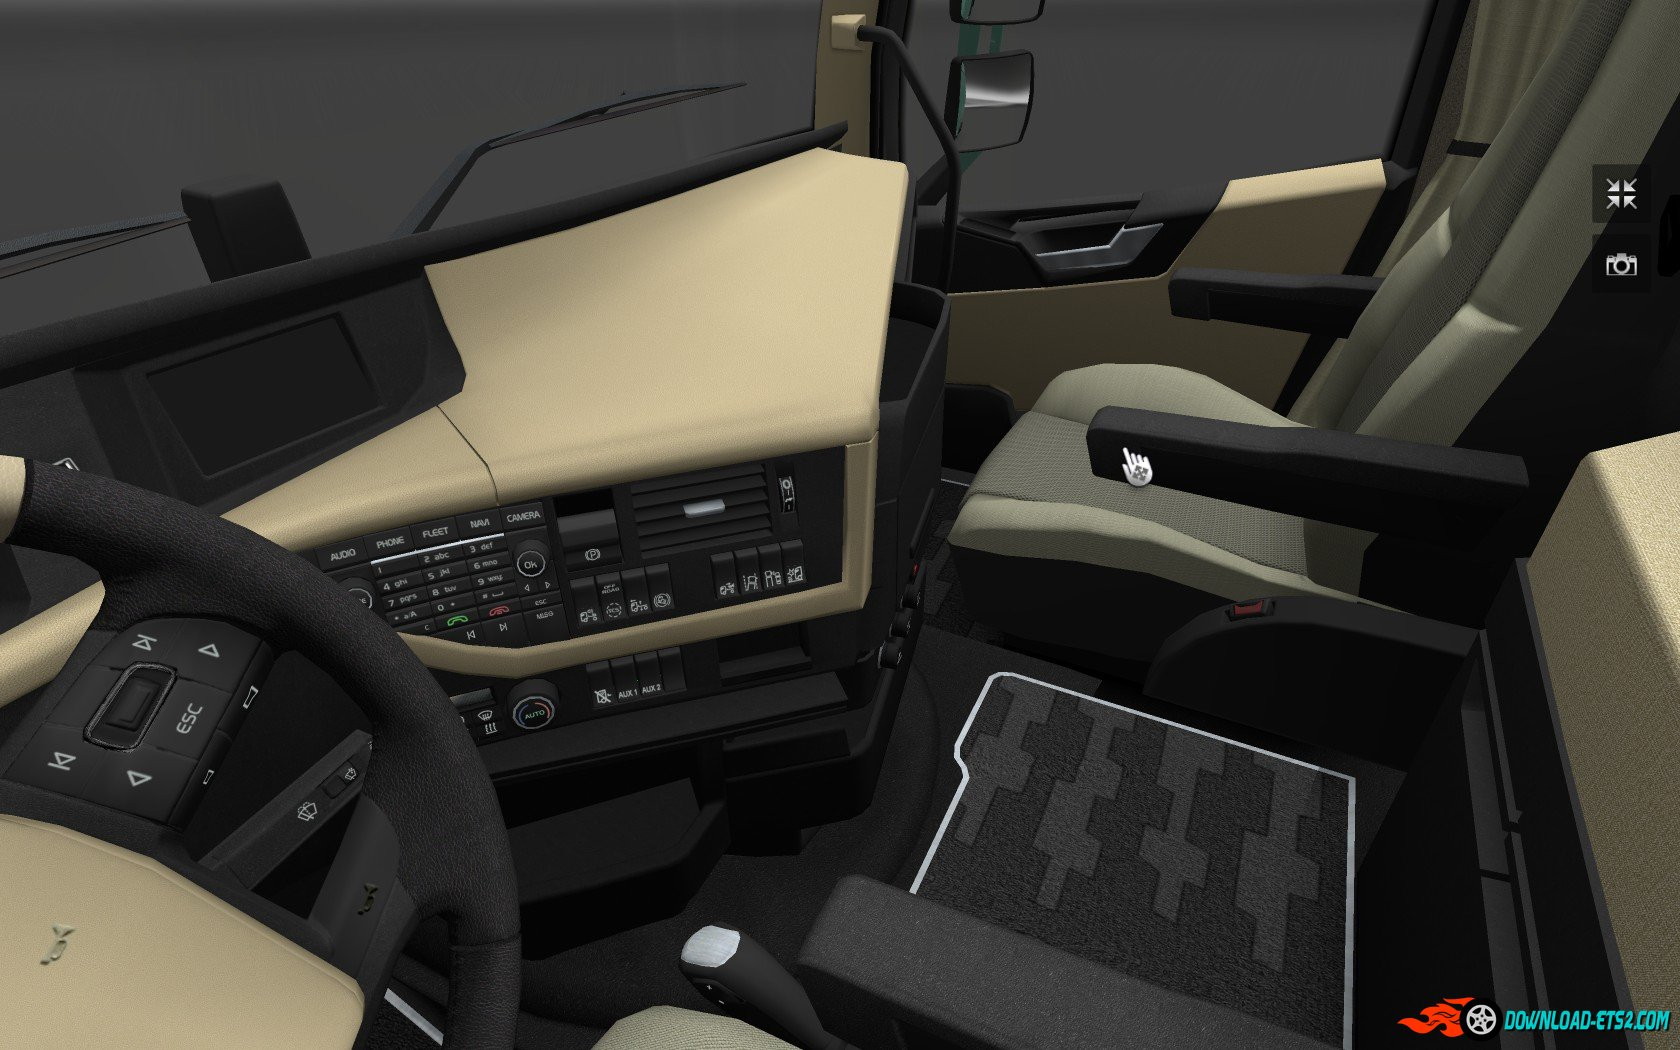 Volvo FH16 2012 - HD Interior v1.3 (by nIGhT-SoN)